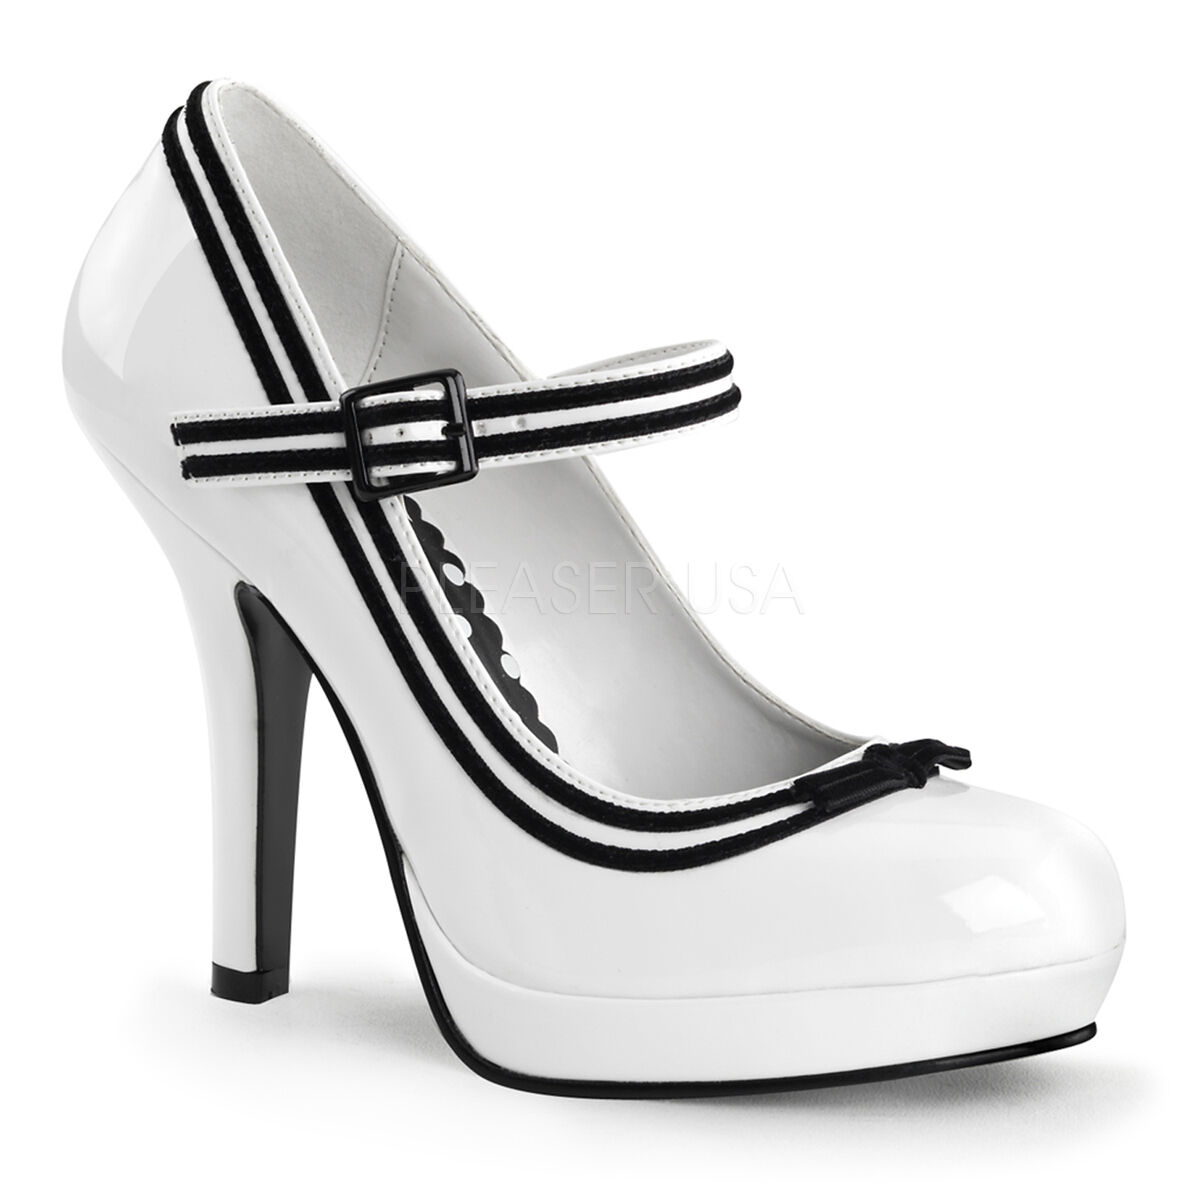 Sexy PLEASER schuhe Retro Vintage Look Weiß Contrast Trim Hot Hot Hot Mary Janes Pumps 244277